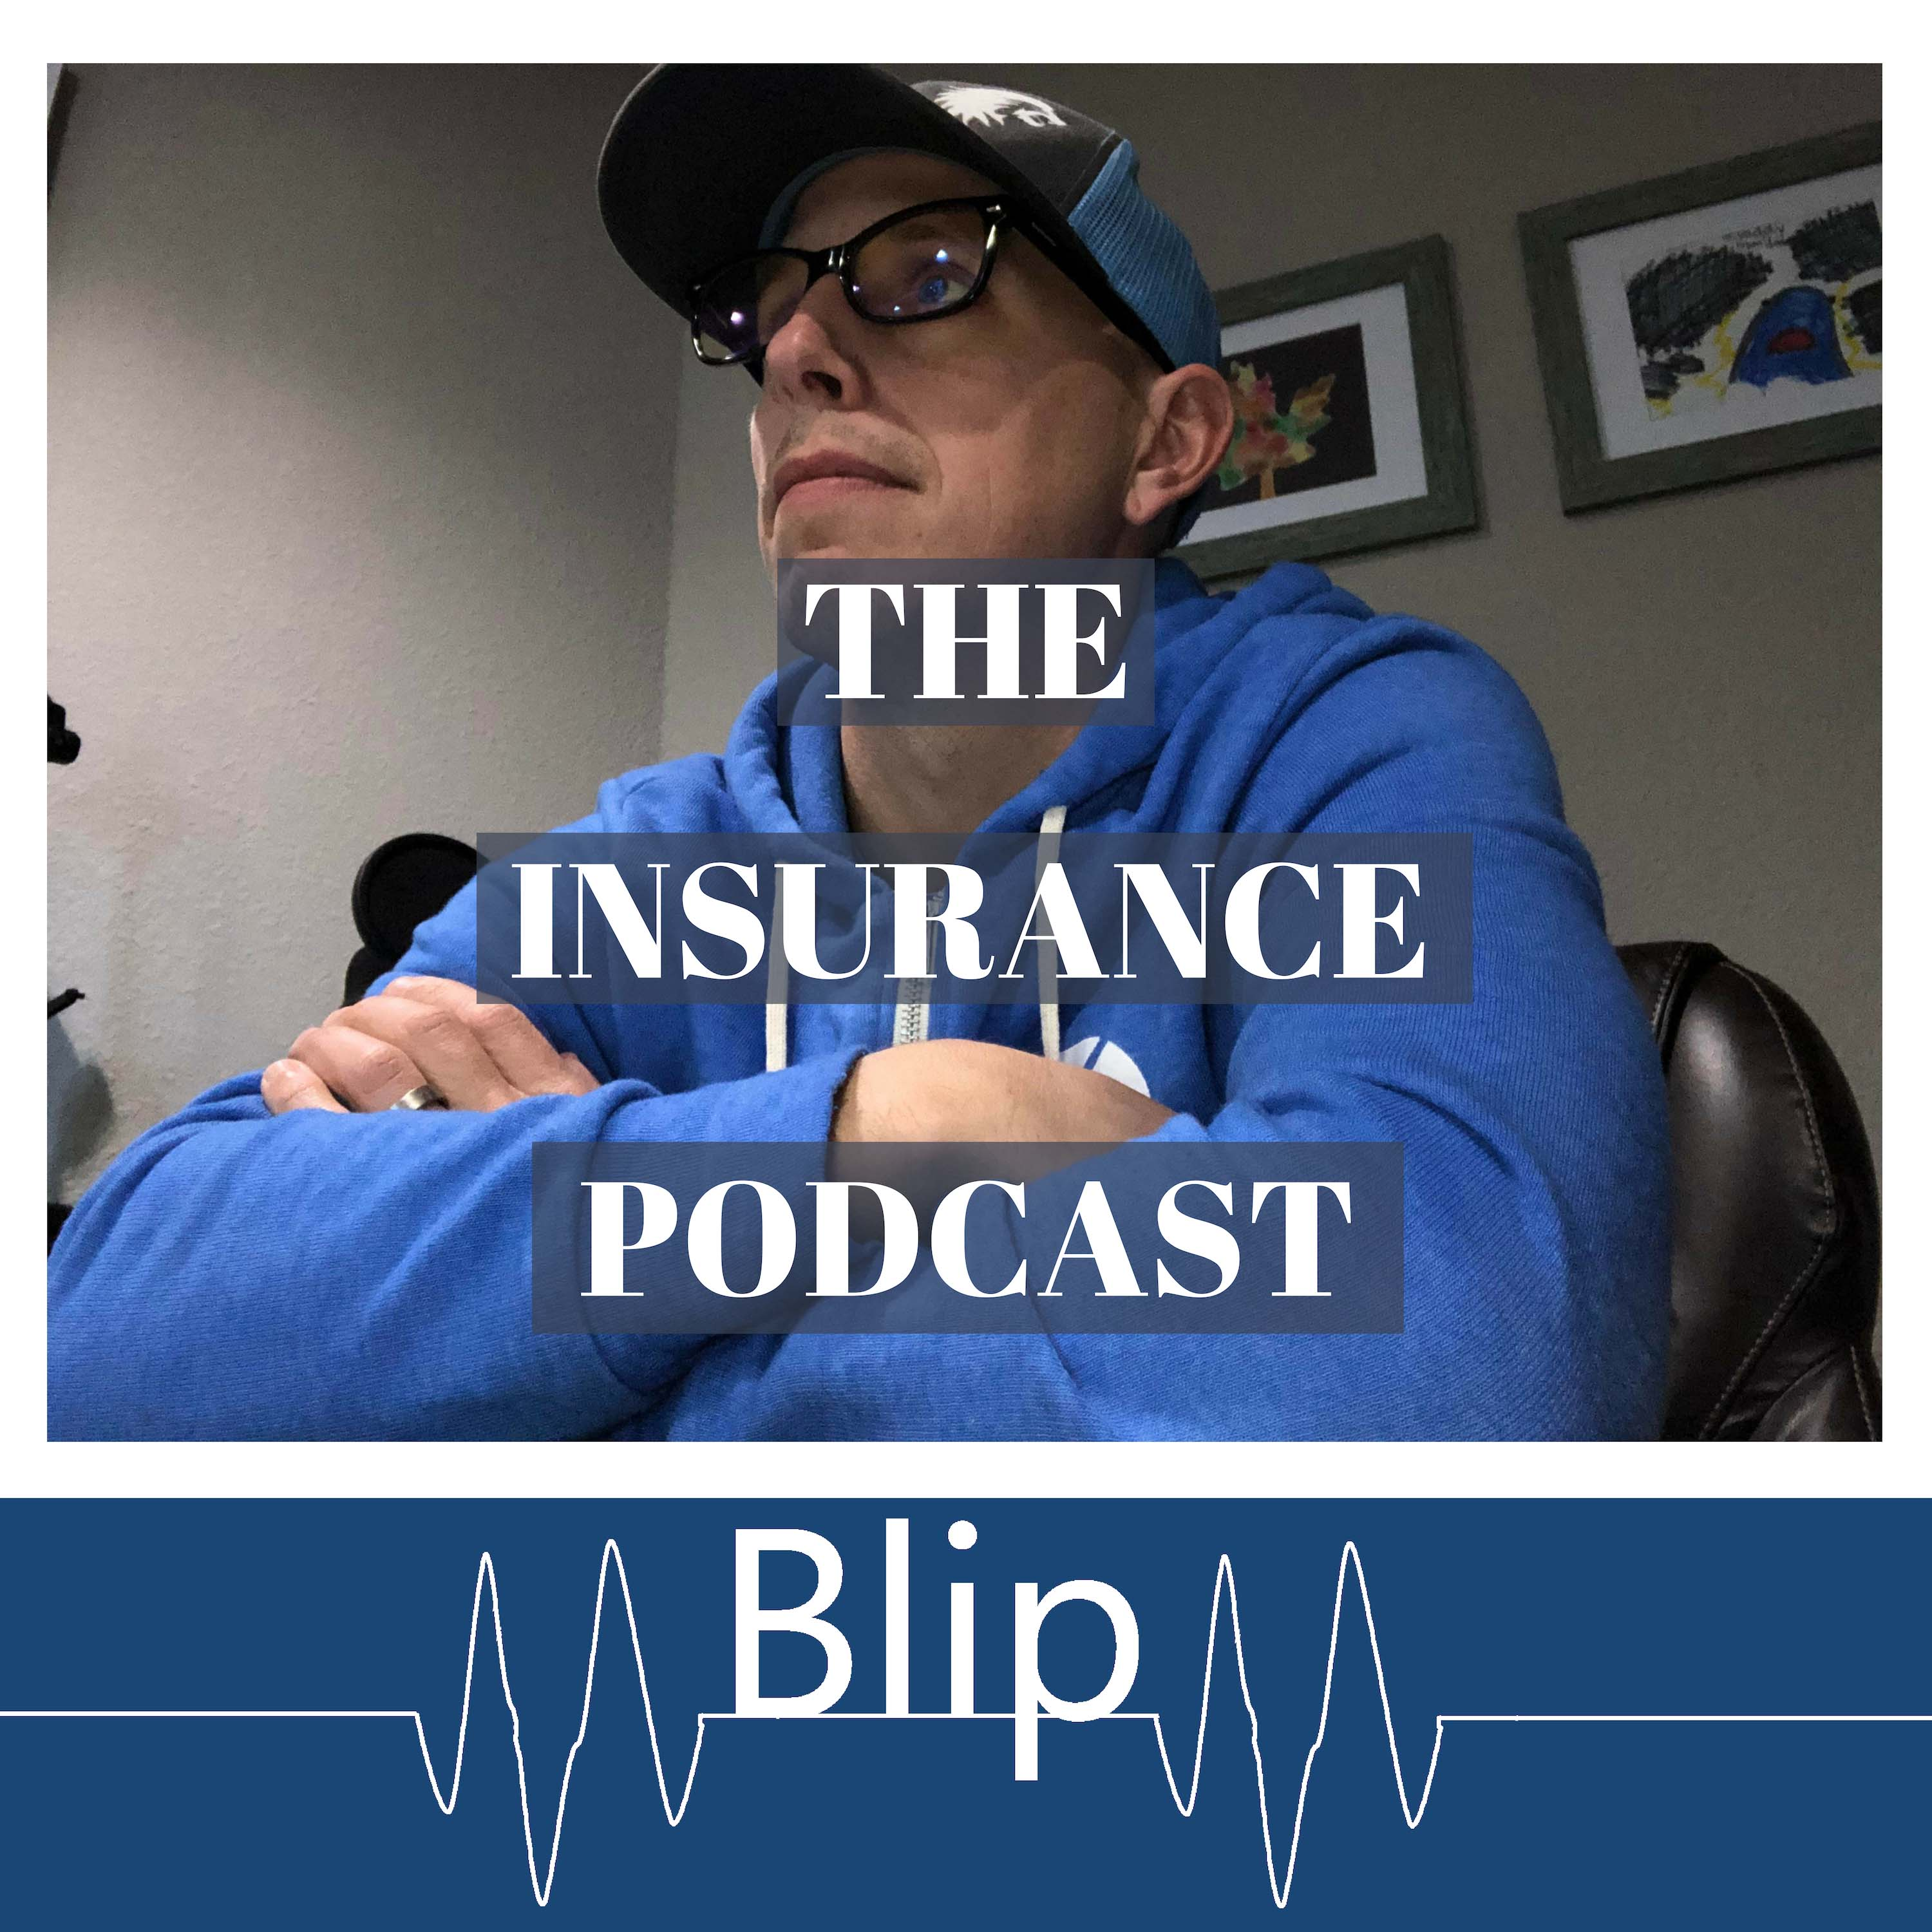 BLIP Podcast - Helping Agents Build Agencies with Josh Berg